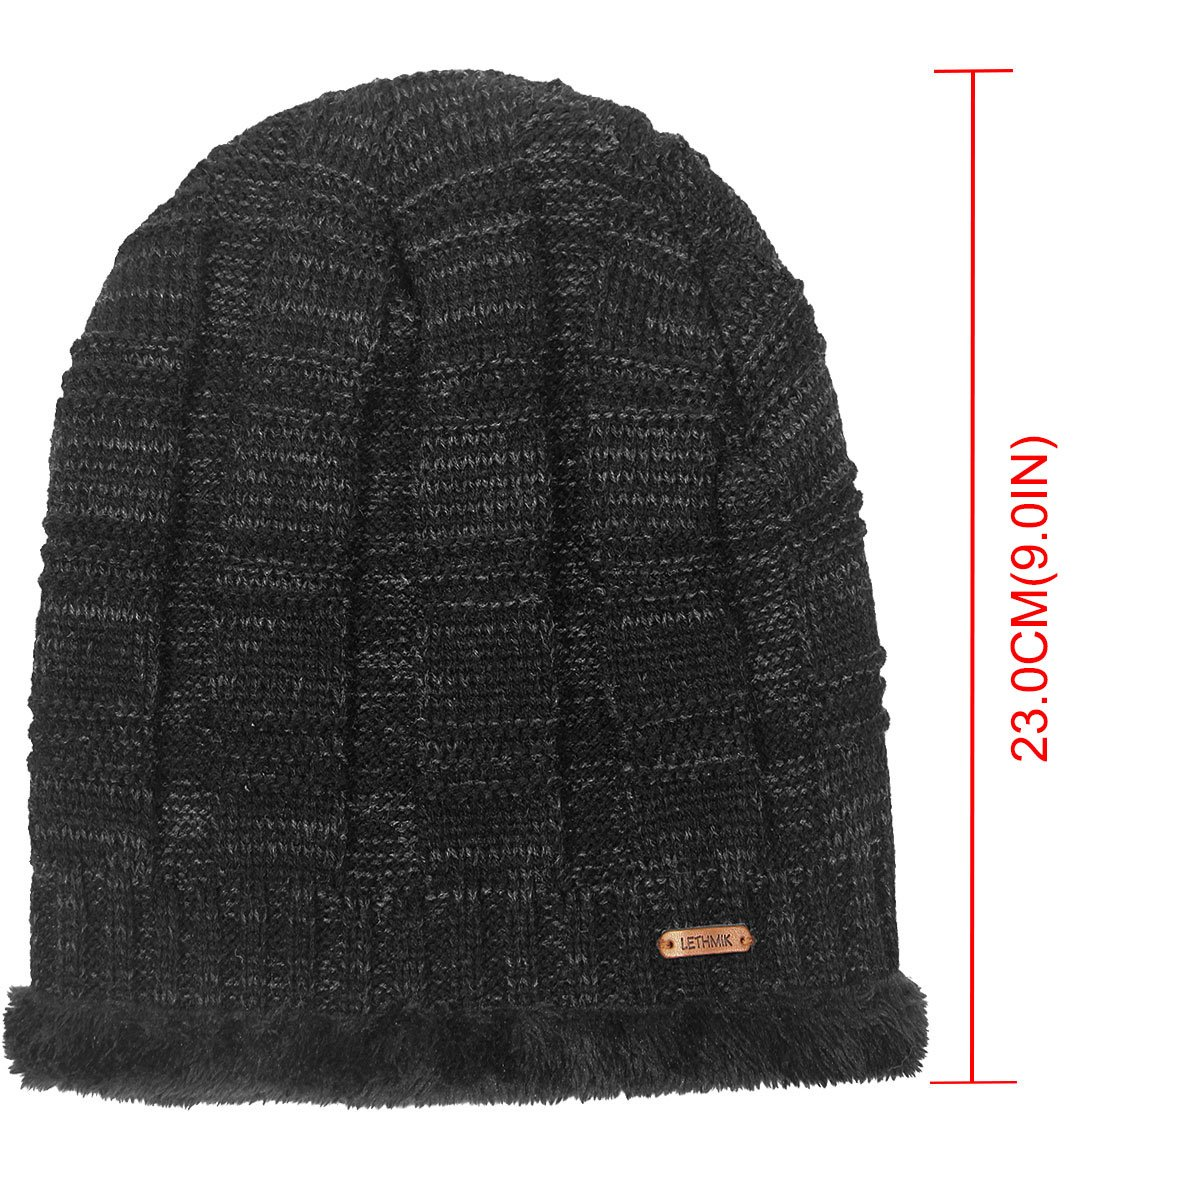 d3adf0afb95a24 LETHMIK Unique Ribbed Knit Beanie Warm Thick Fleece Lined Hat Mens Winter  Skull Cap Black at Amazon Men's Clothing store: